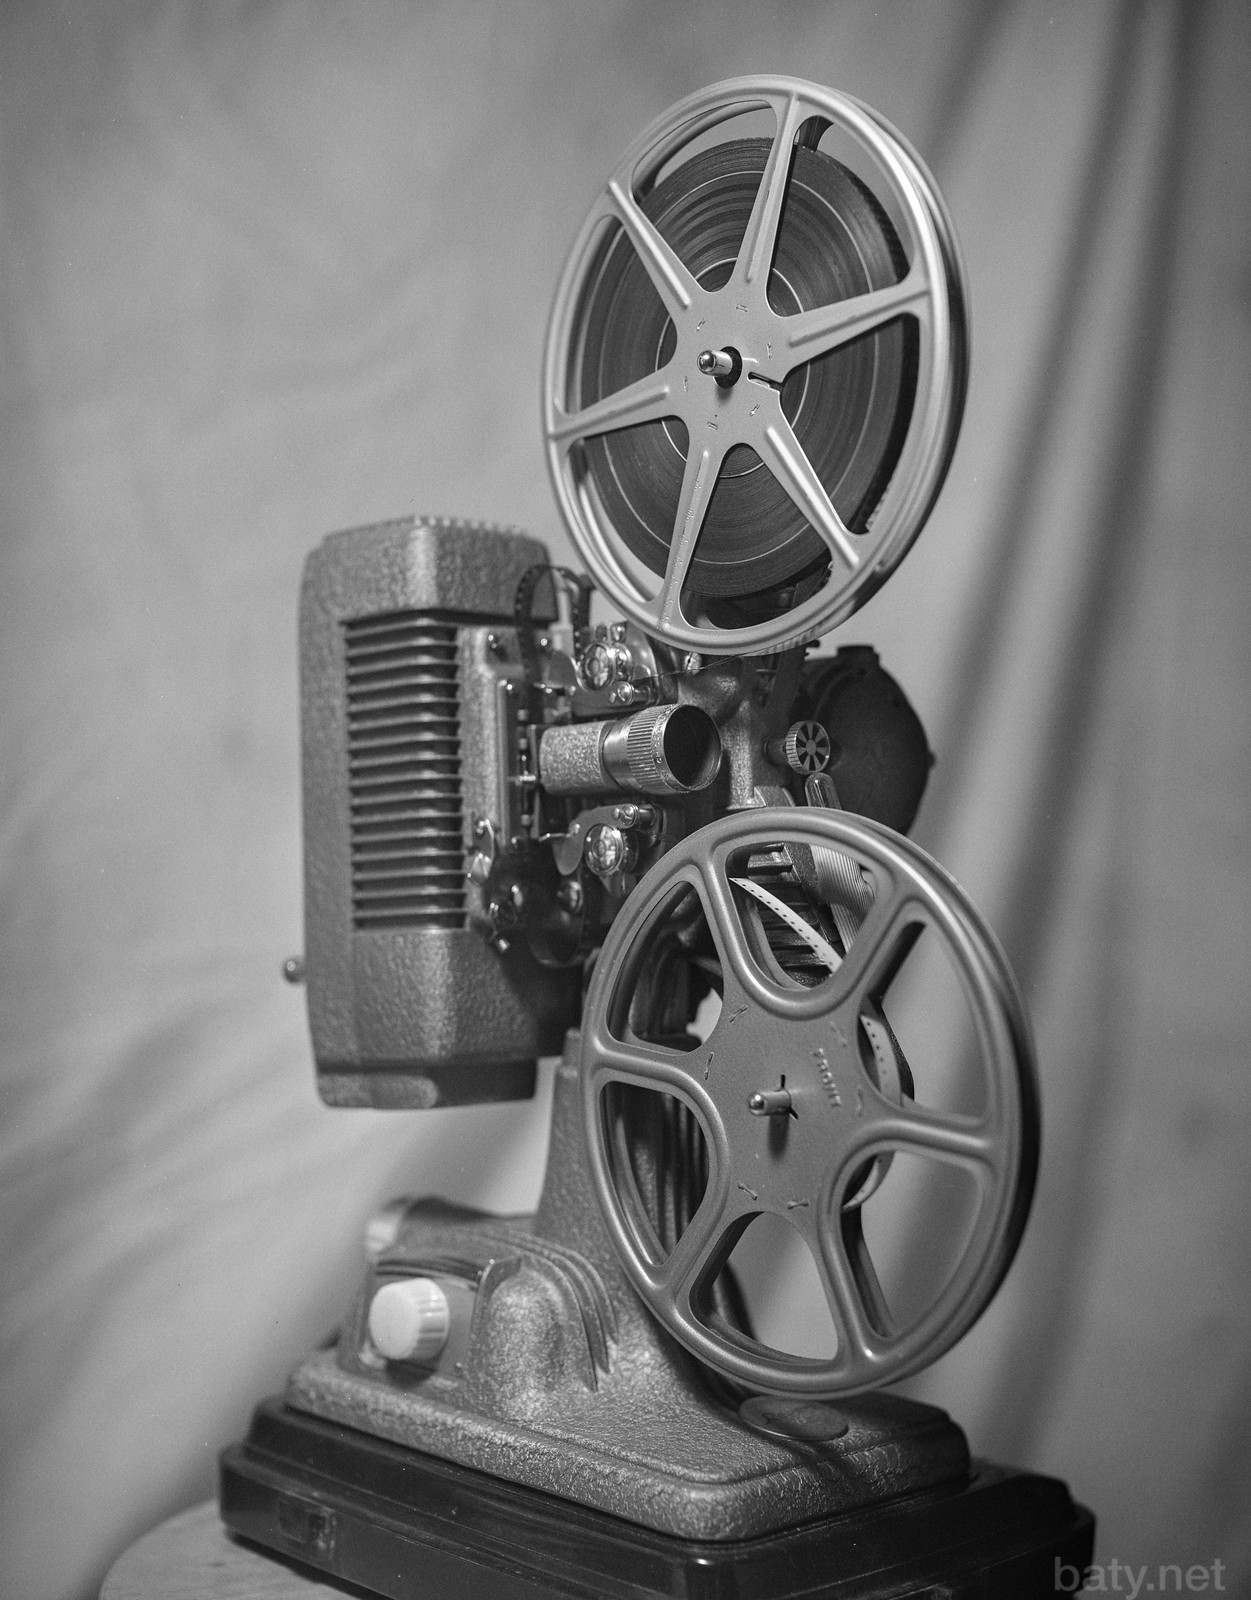 8mm Projector (2016)